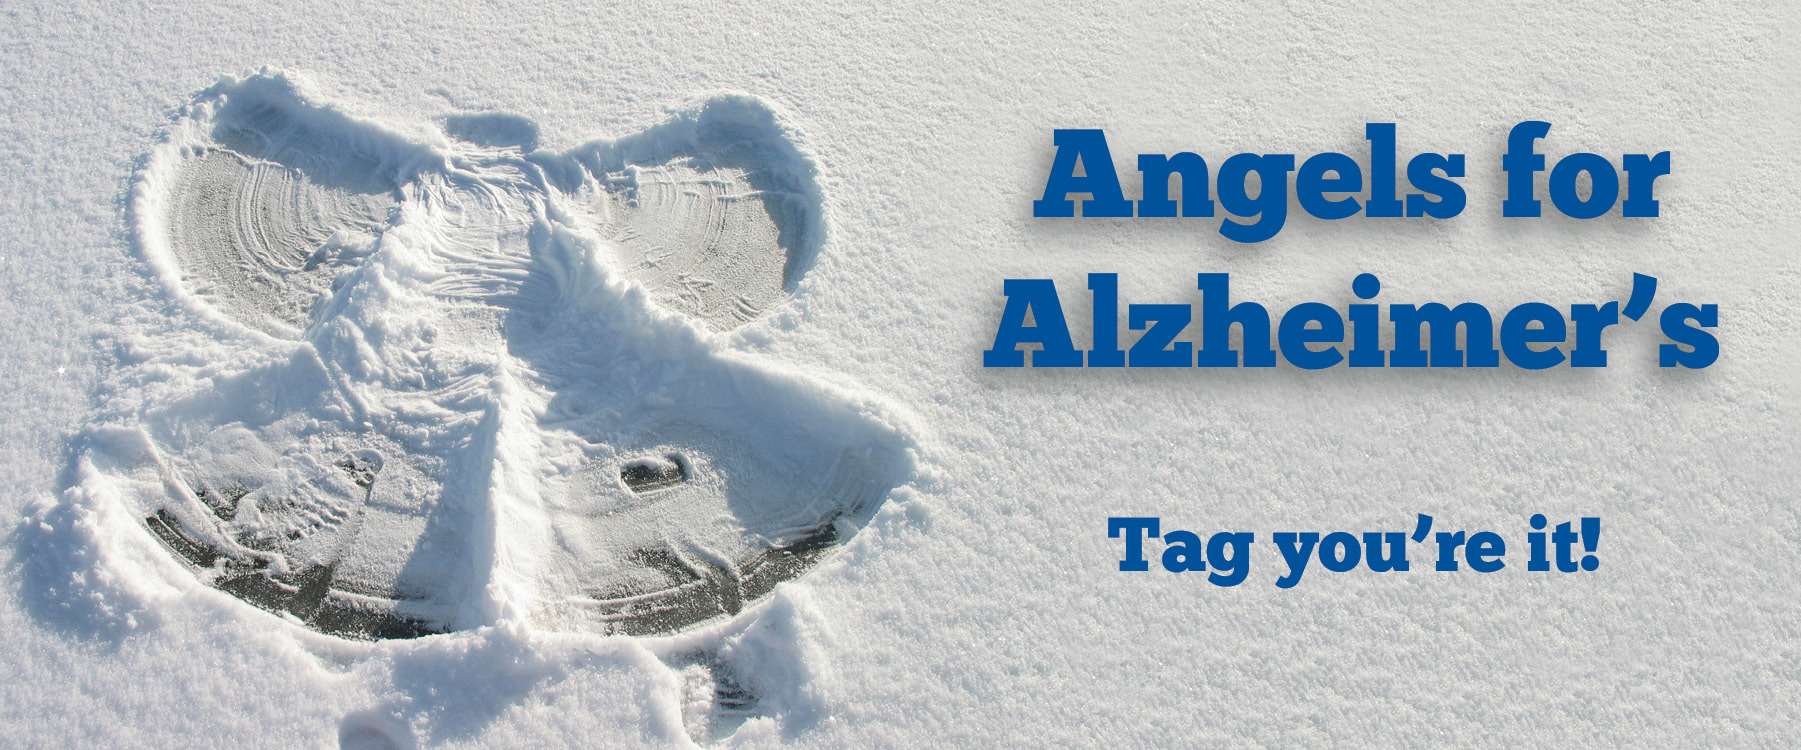 webpage header - angels for alzheimer's